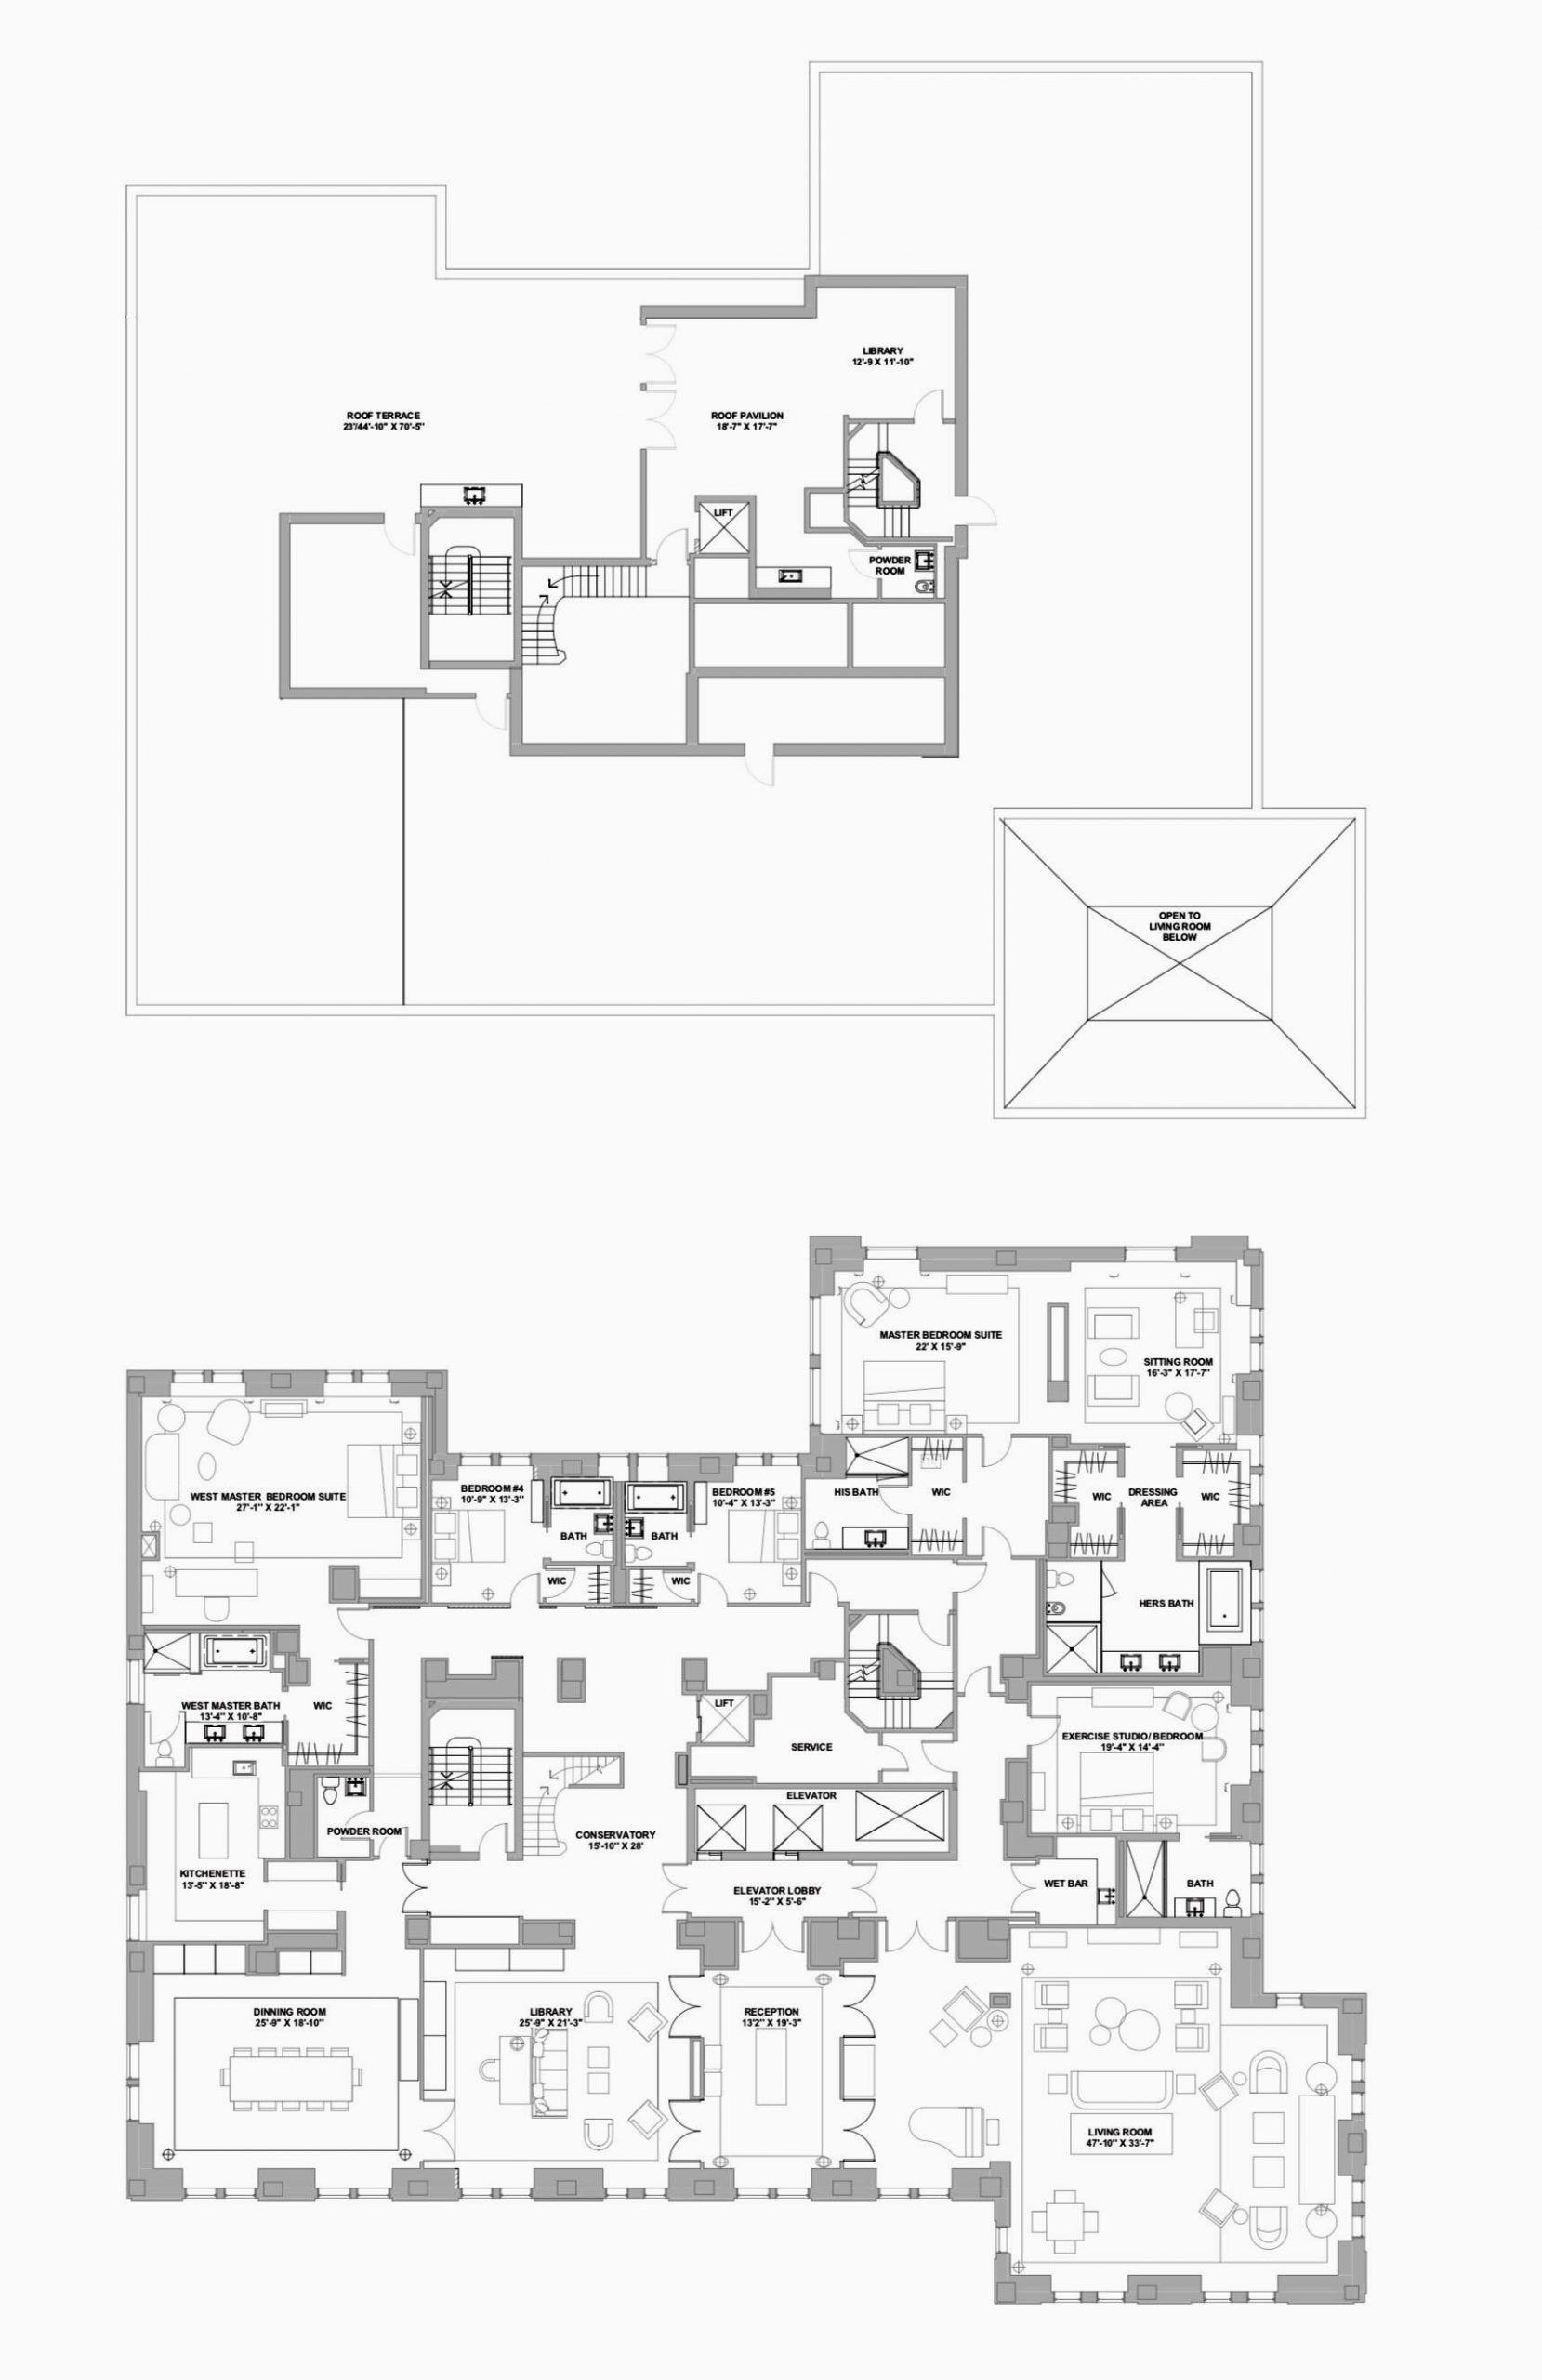 House Plans 10000 Square Feet Beautiful The Mark Hotel New York The Mark Penthouse Suite 10 000 House Plans How To Plan Square Feet